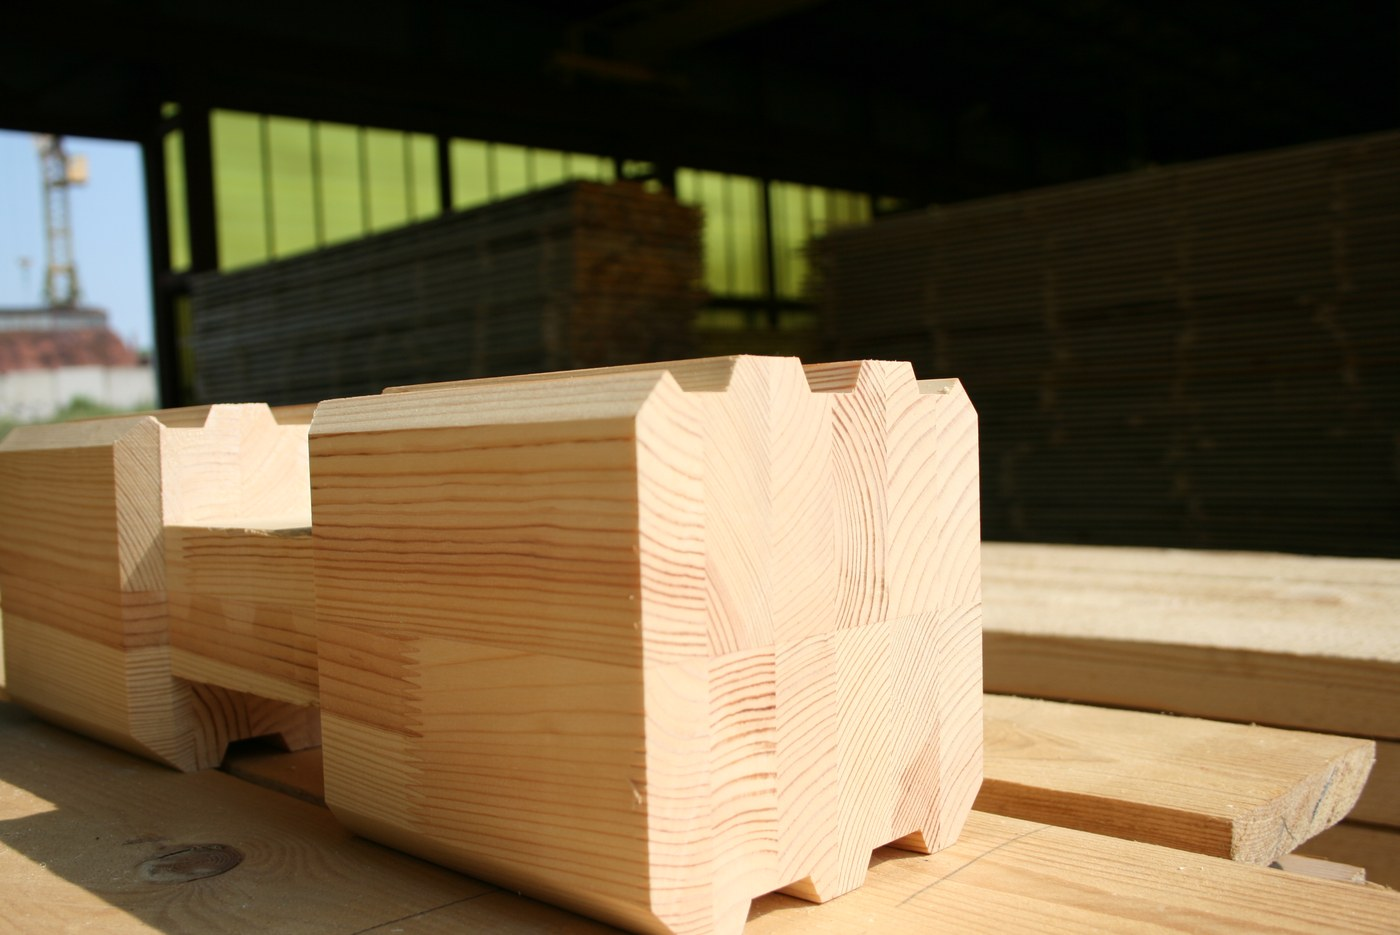 Double glued laminated timber